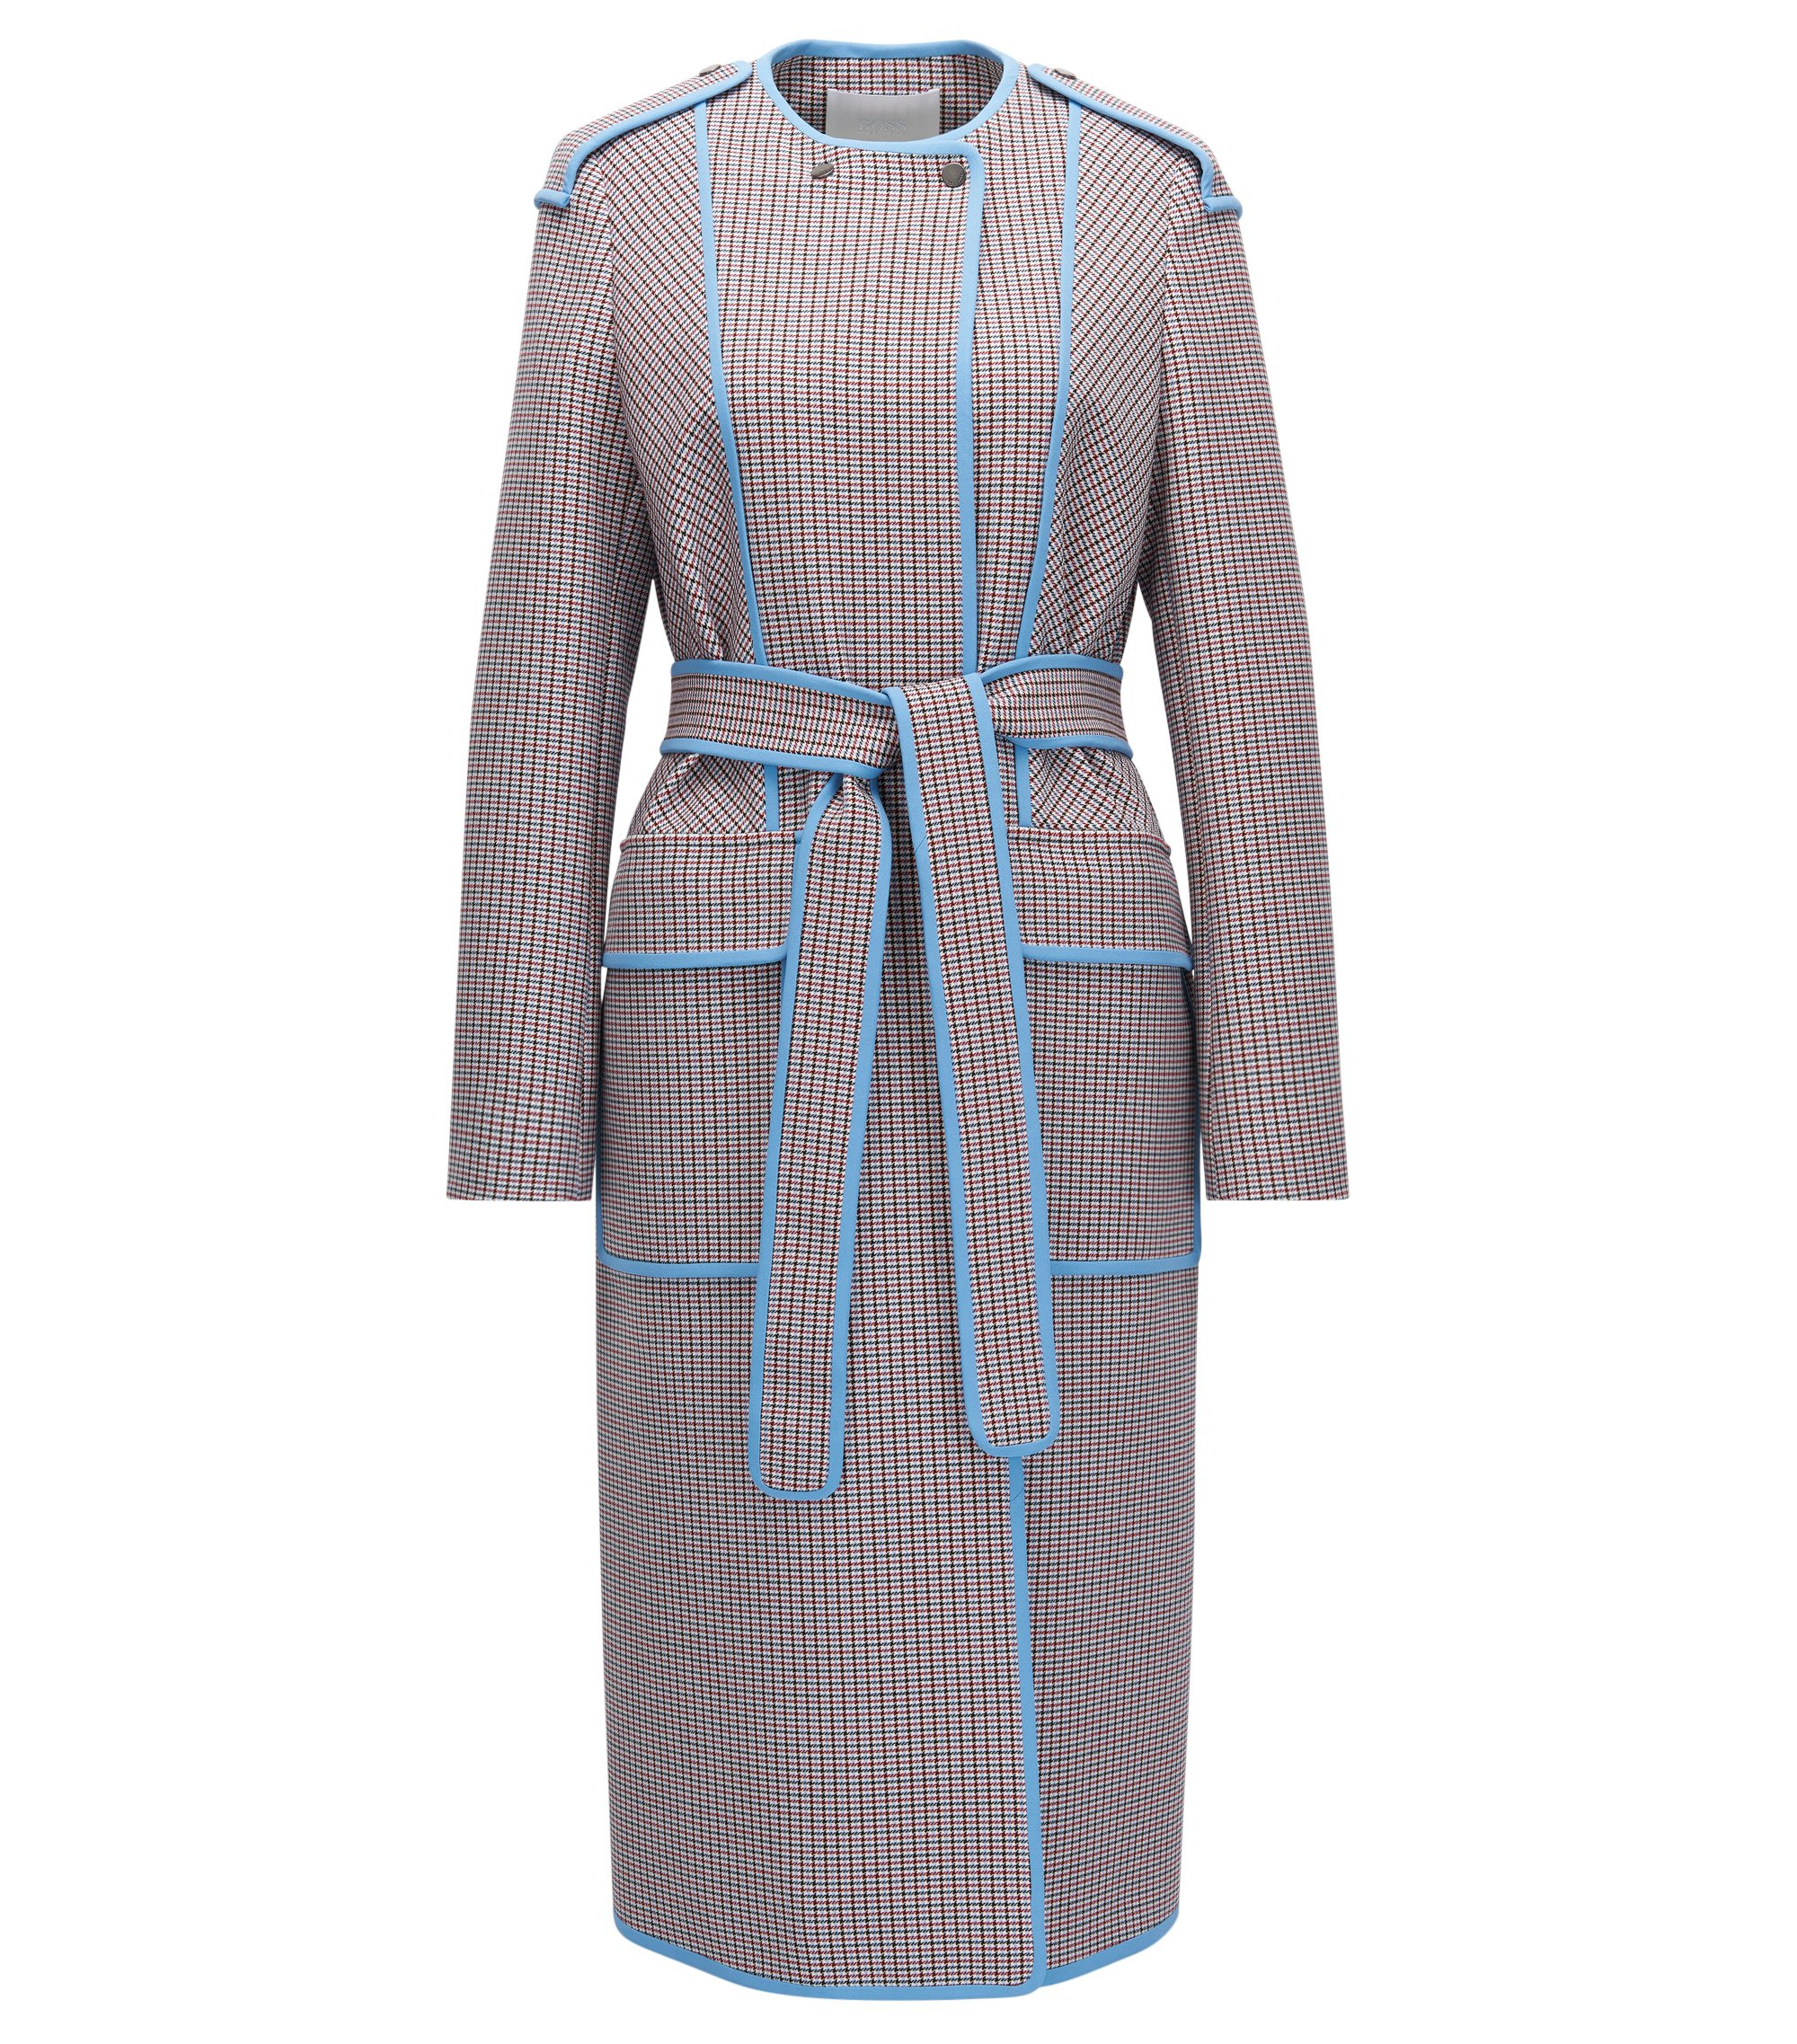 Oversized long coat in pepita-patterned fabric, Patterned